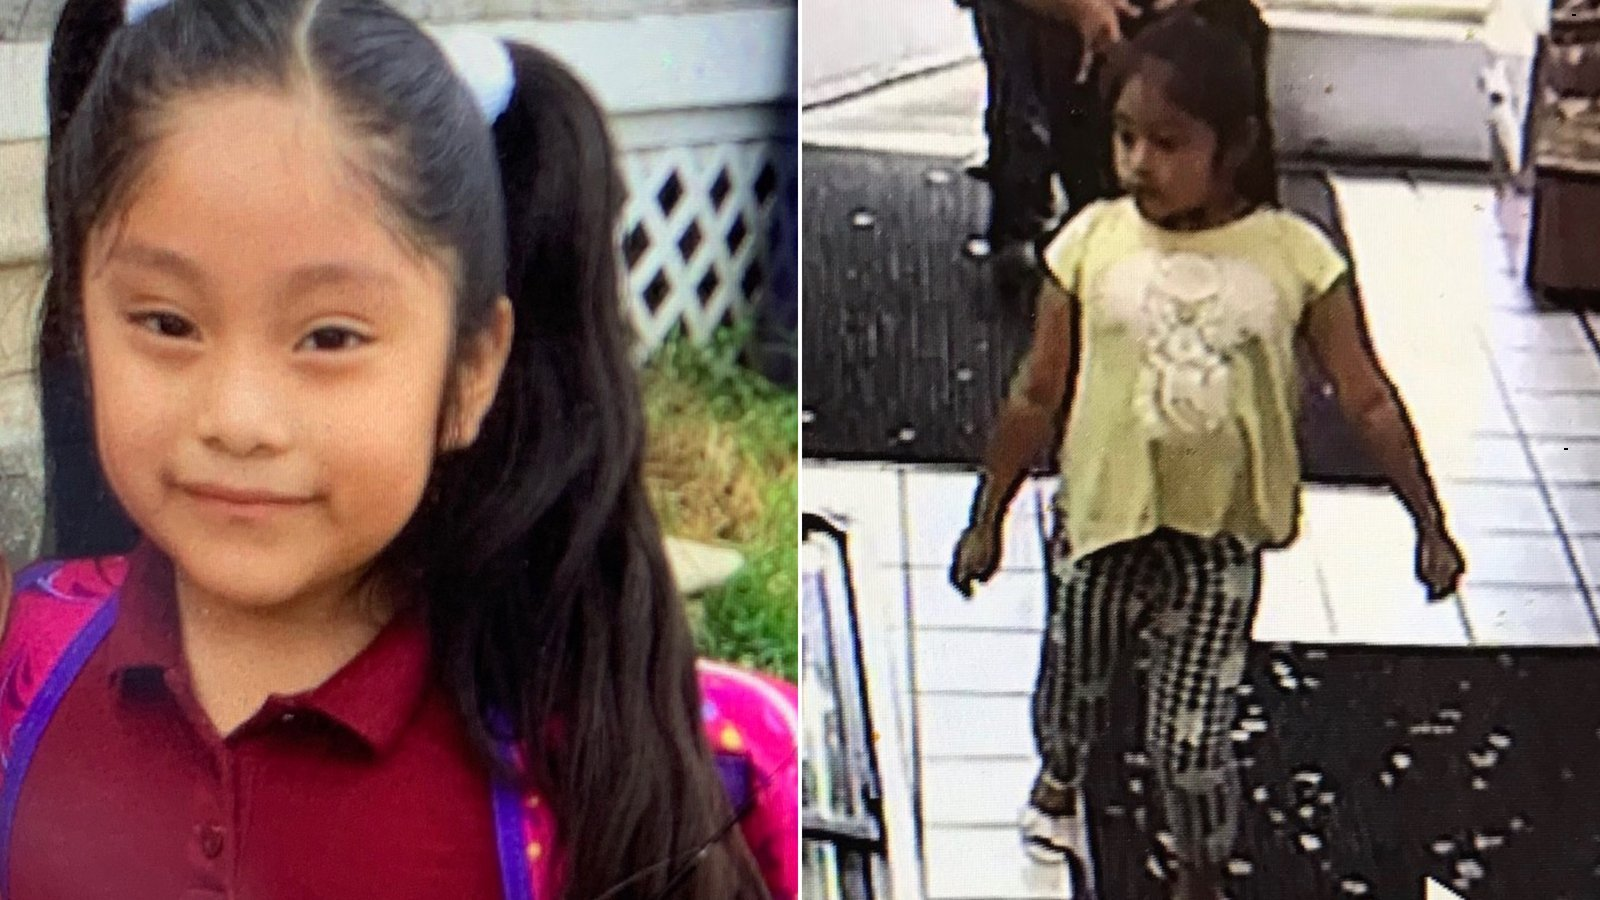 Reward at least $25,000 for 5-year-old girl who may have been abducted from a New Jersey playground